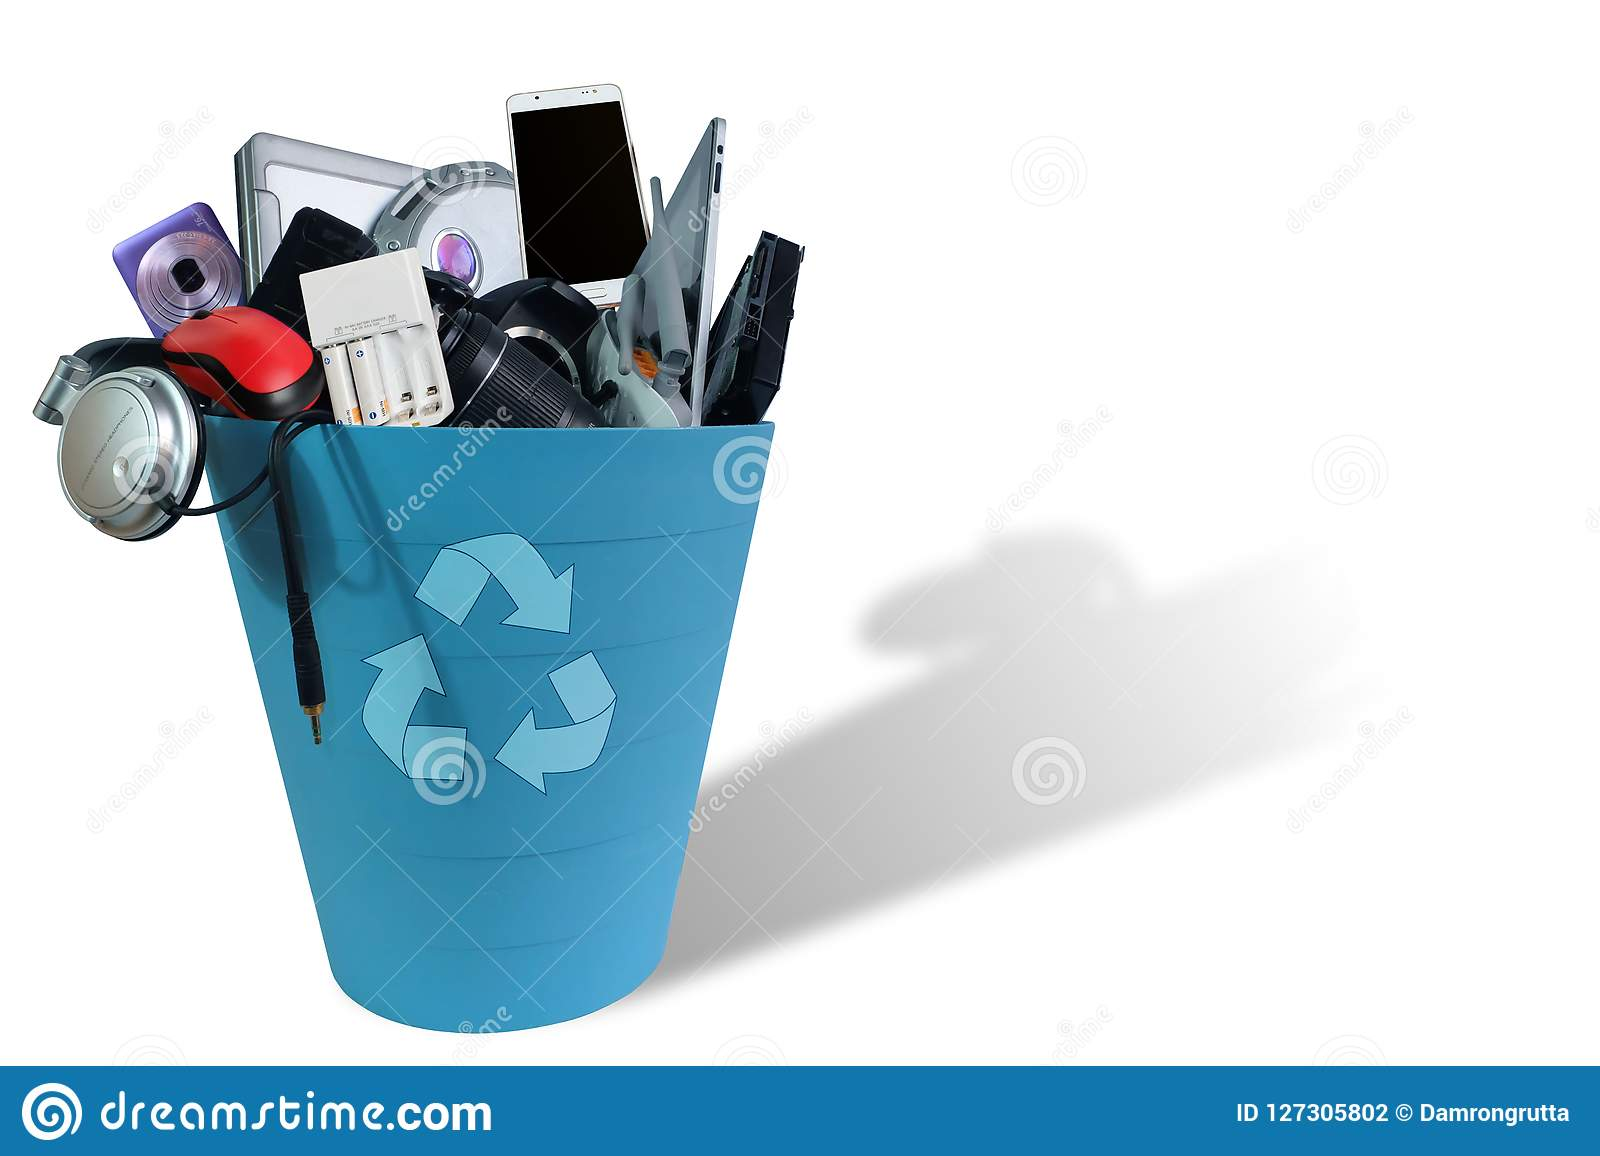 Electronic Waste broken or damage In Recycle bin isolated on white background